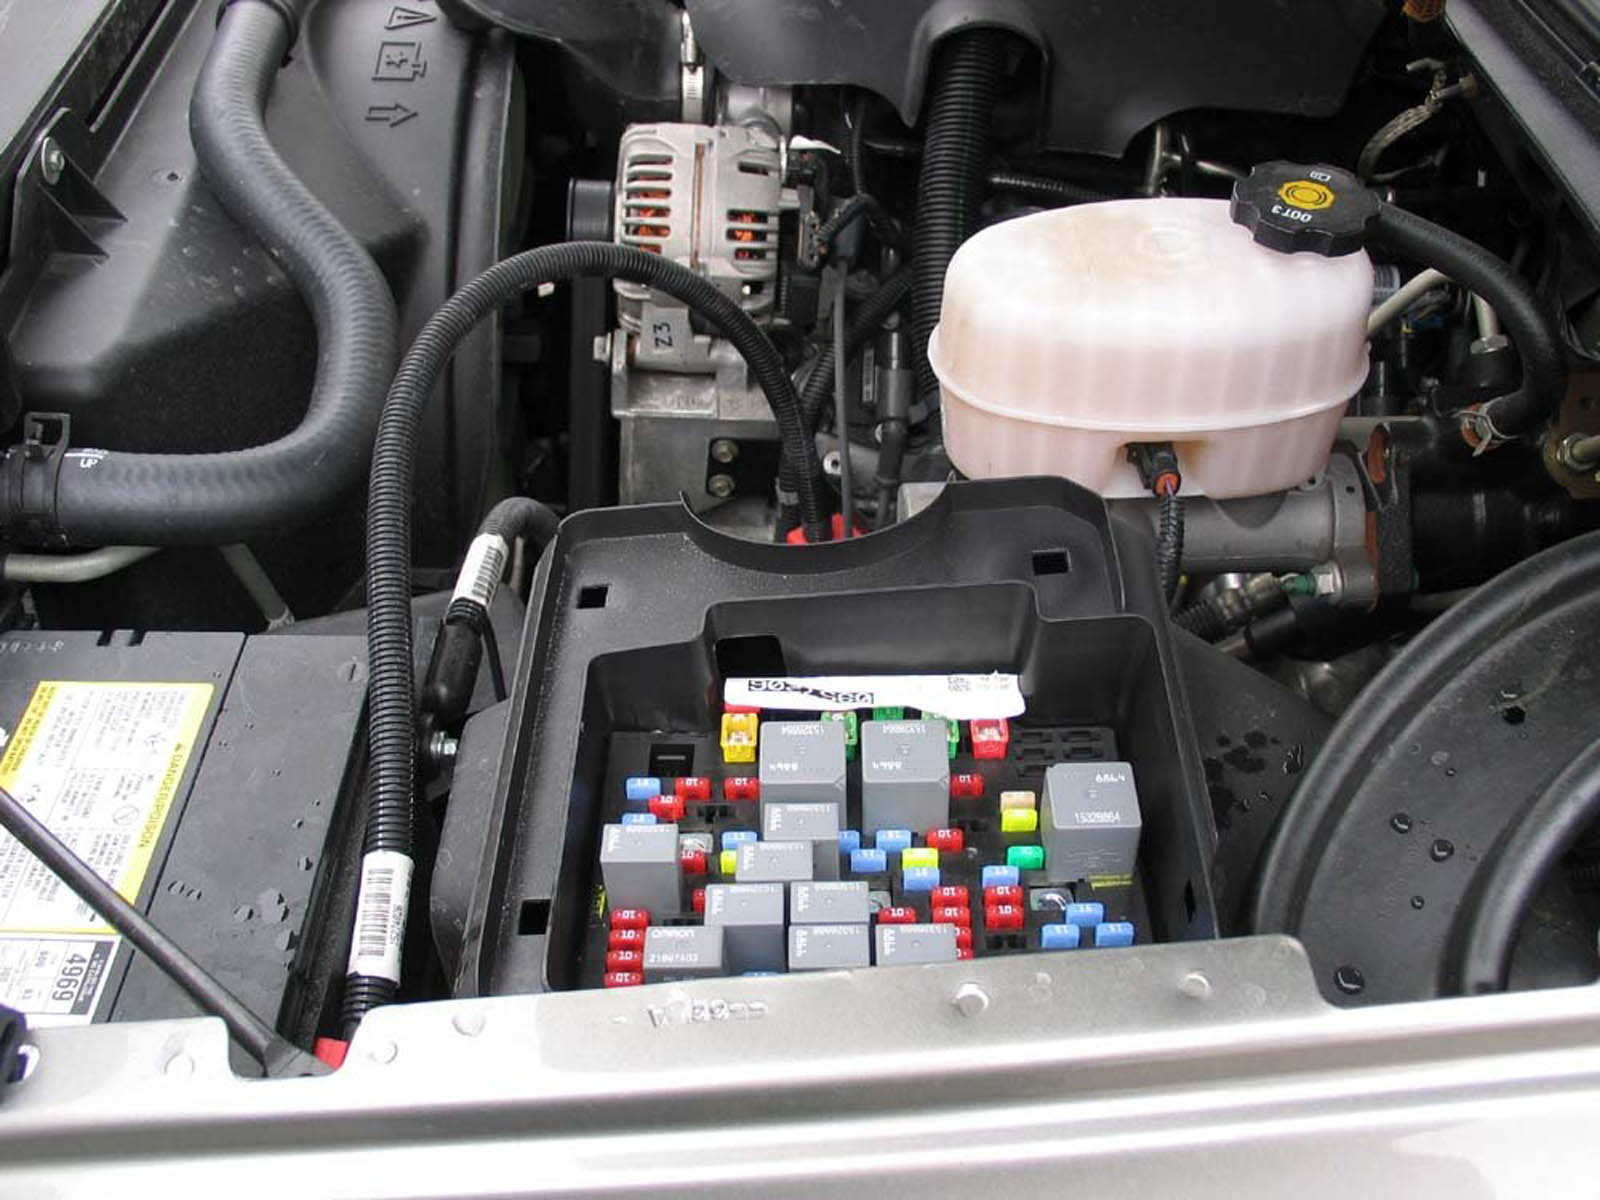 MMMay 27 Fuse Box 04 69845 chevrolet silverado gmt800 1999 2006 fuse box diagram chevroletforum 2008 F-350 Fuse Box at eliteediting.co